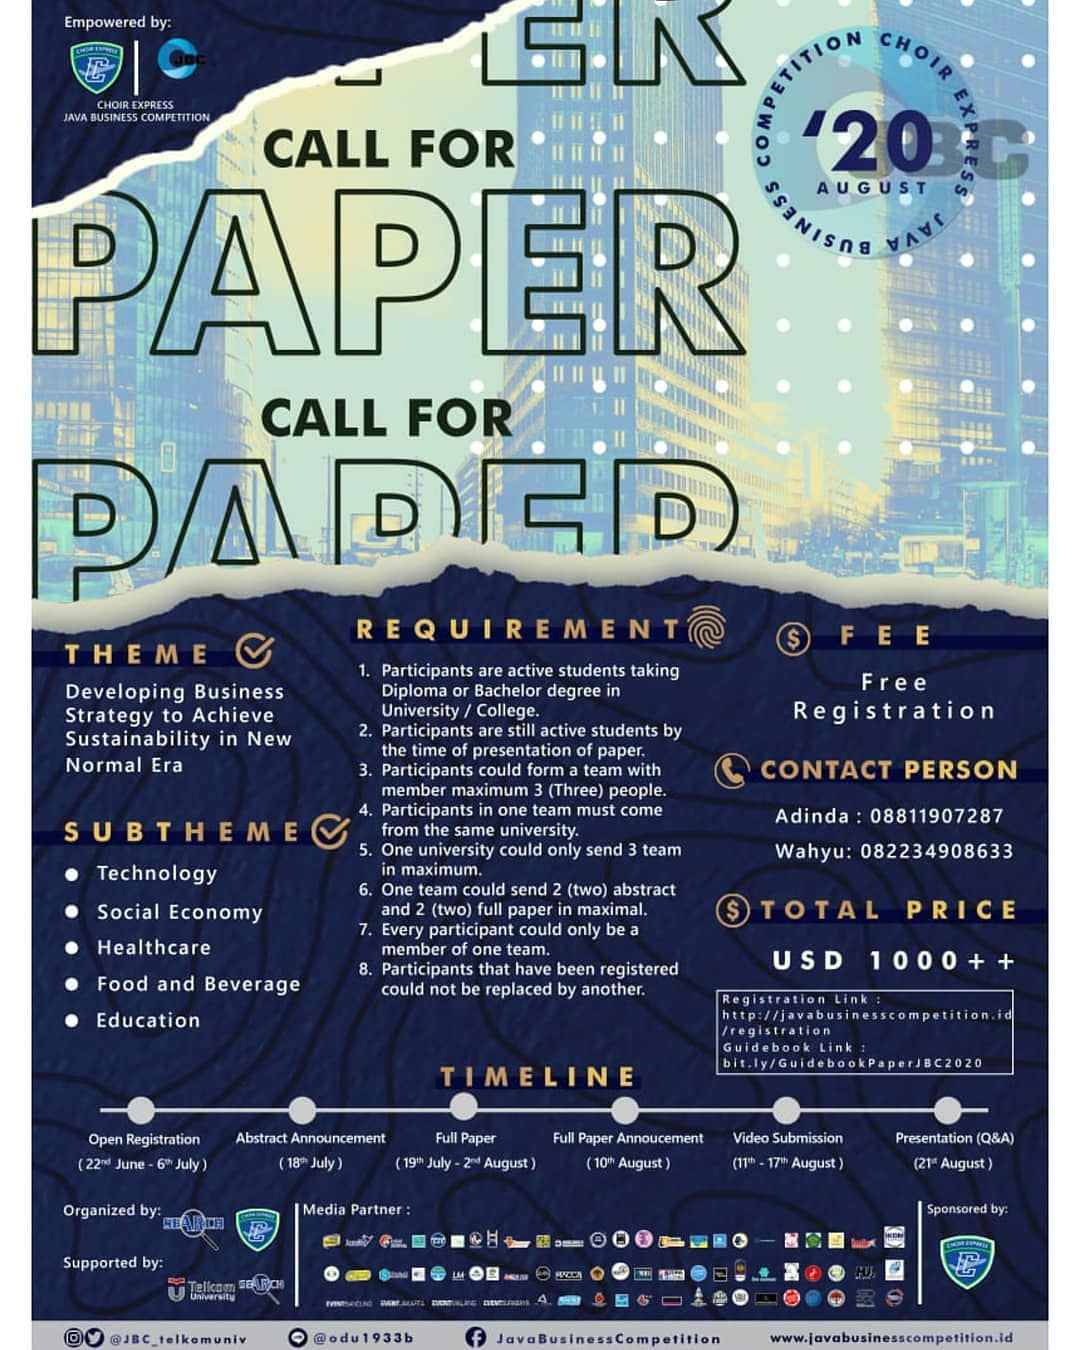 CALL FOR PAPER CHOIR EXPRESS JAVA BUSINESS COMPETITION (JBC) 2020